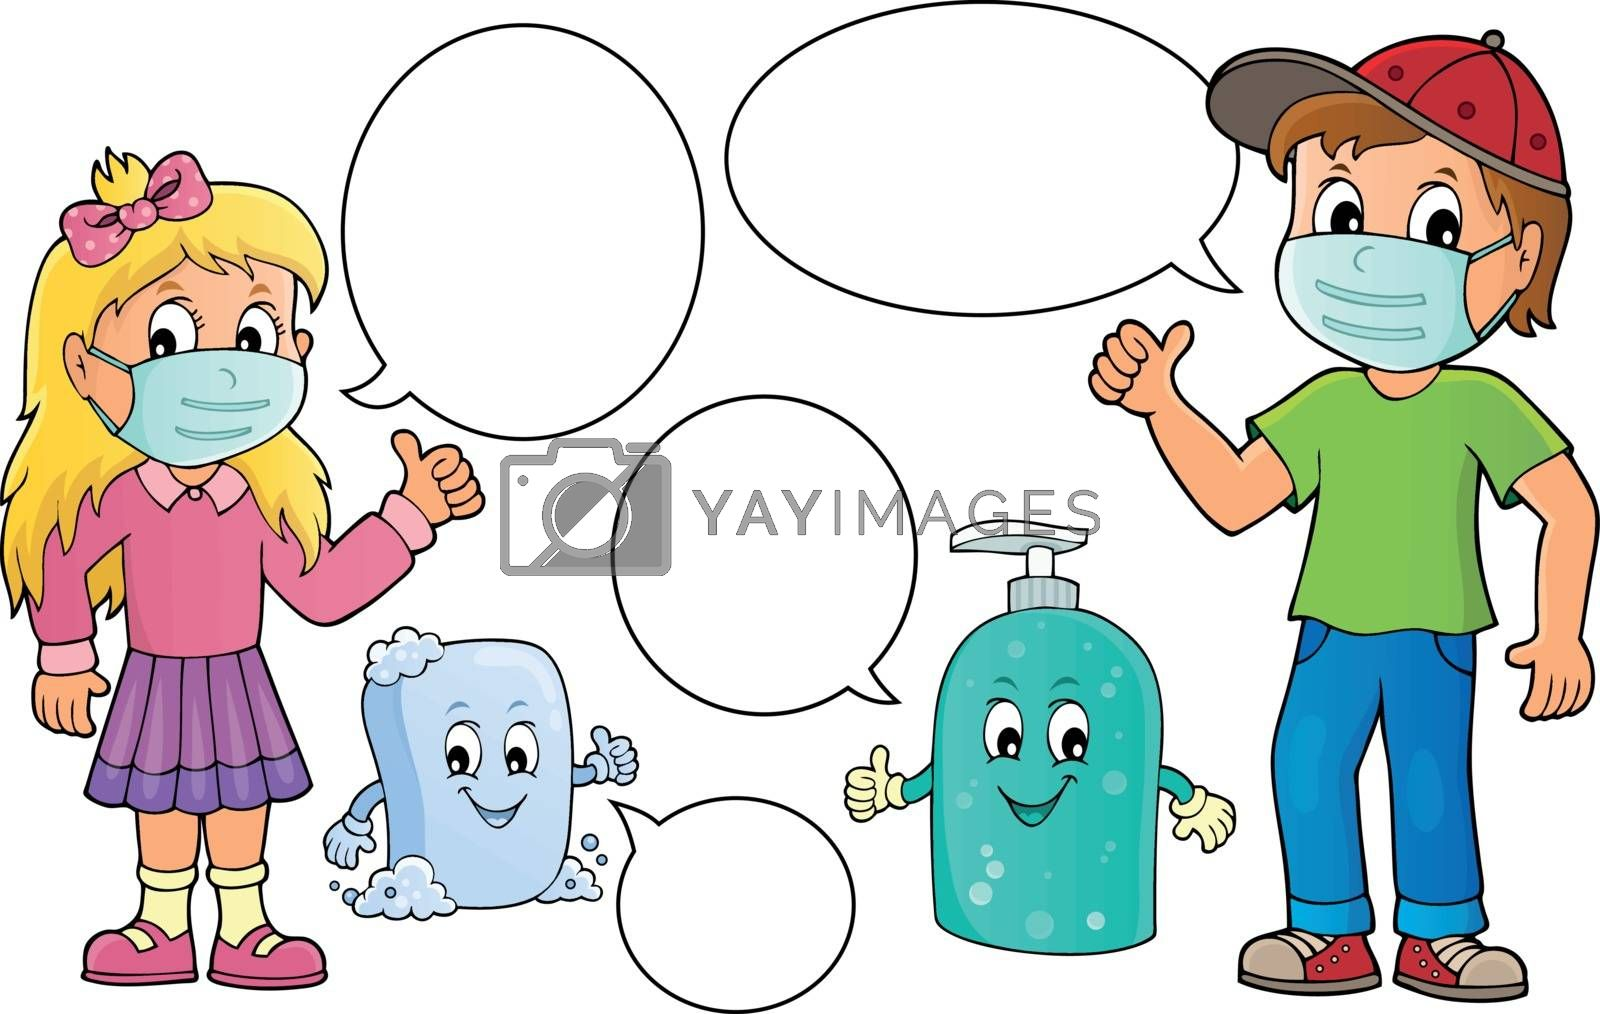 Virus prevention theme set 2 - eps10 vector illustration.